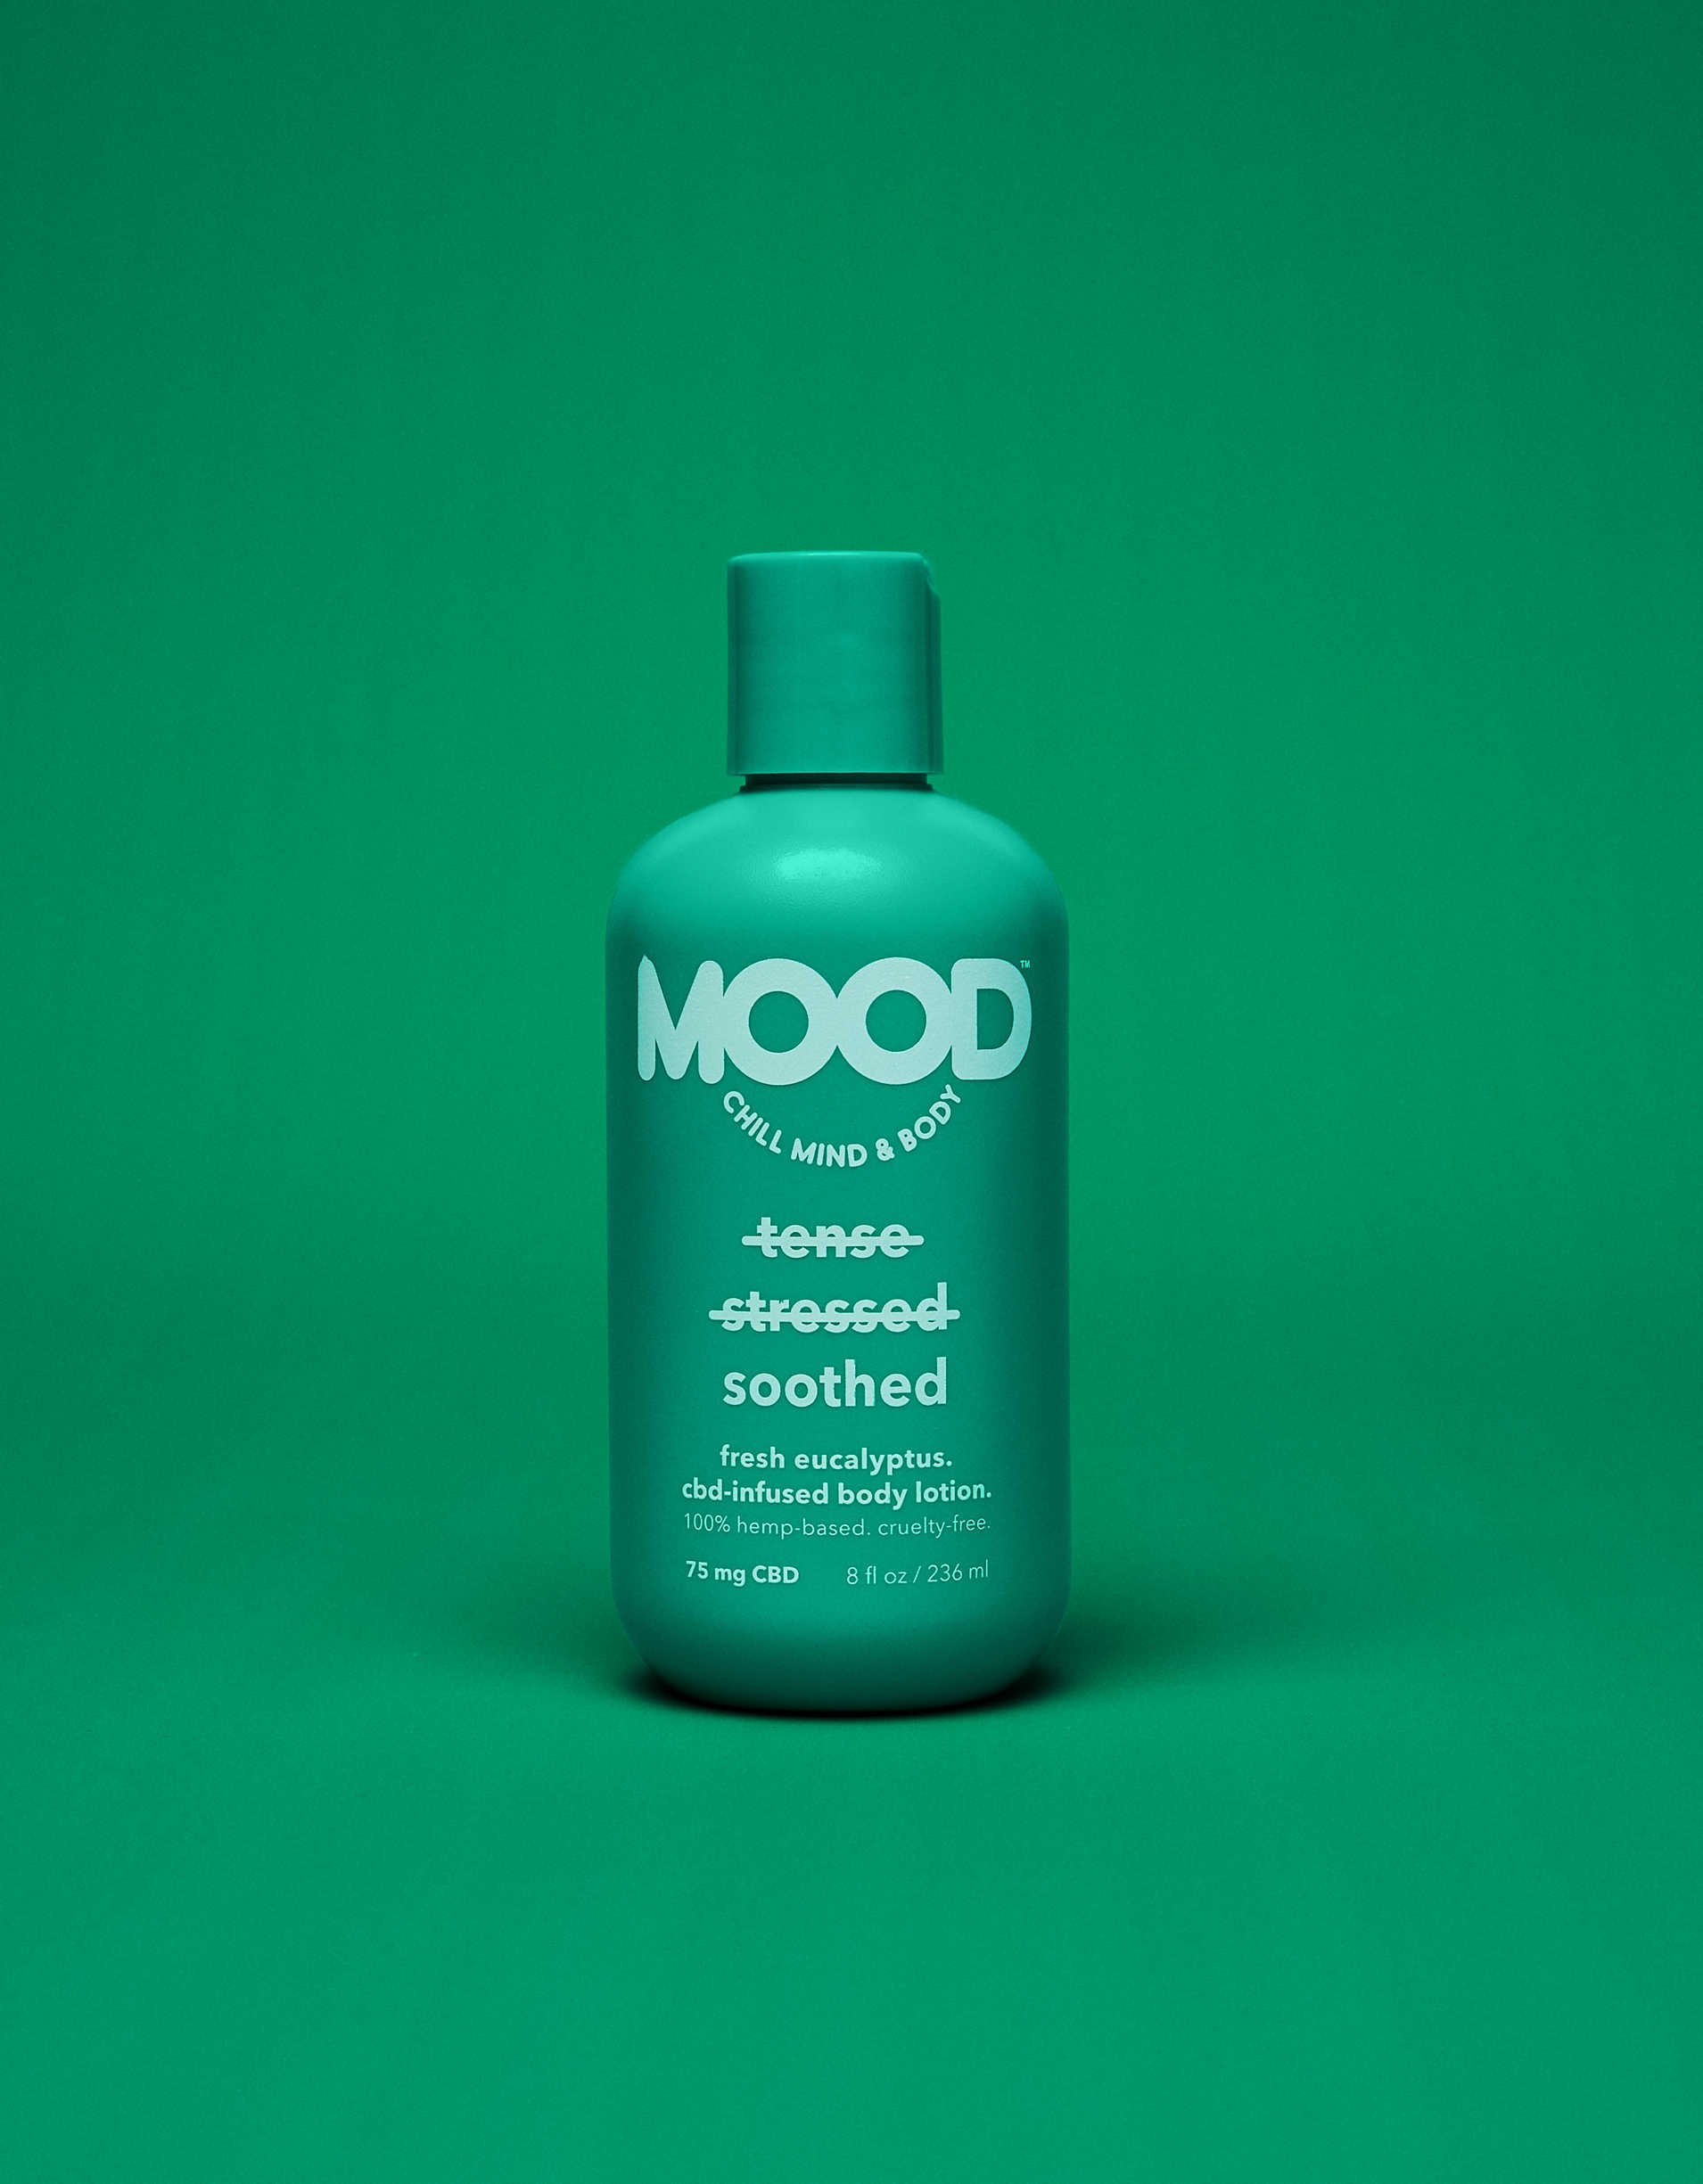 MOOD Soothed CBD-Infused Body Lotion